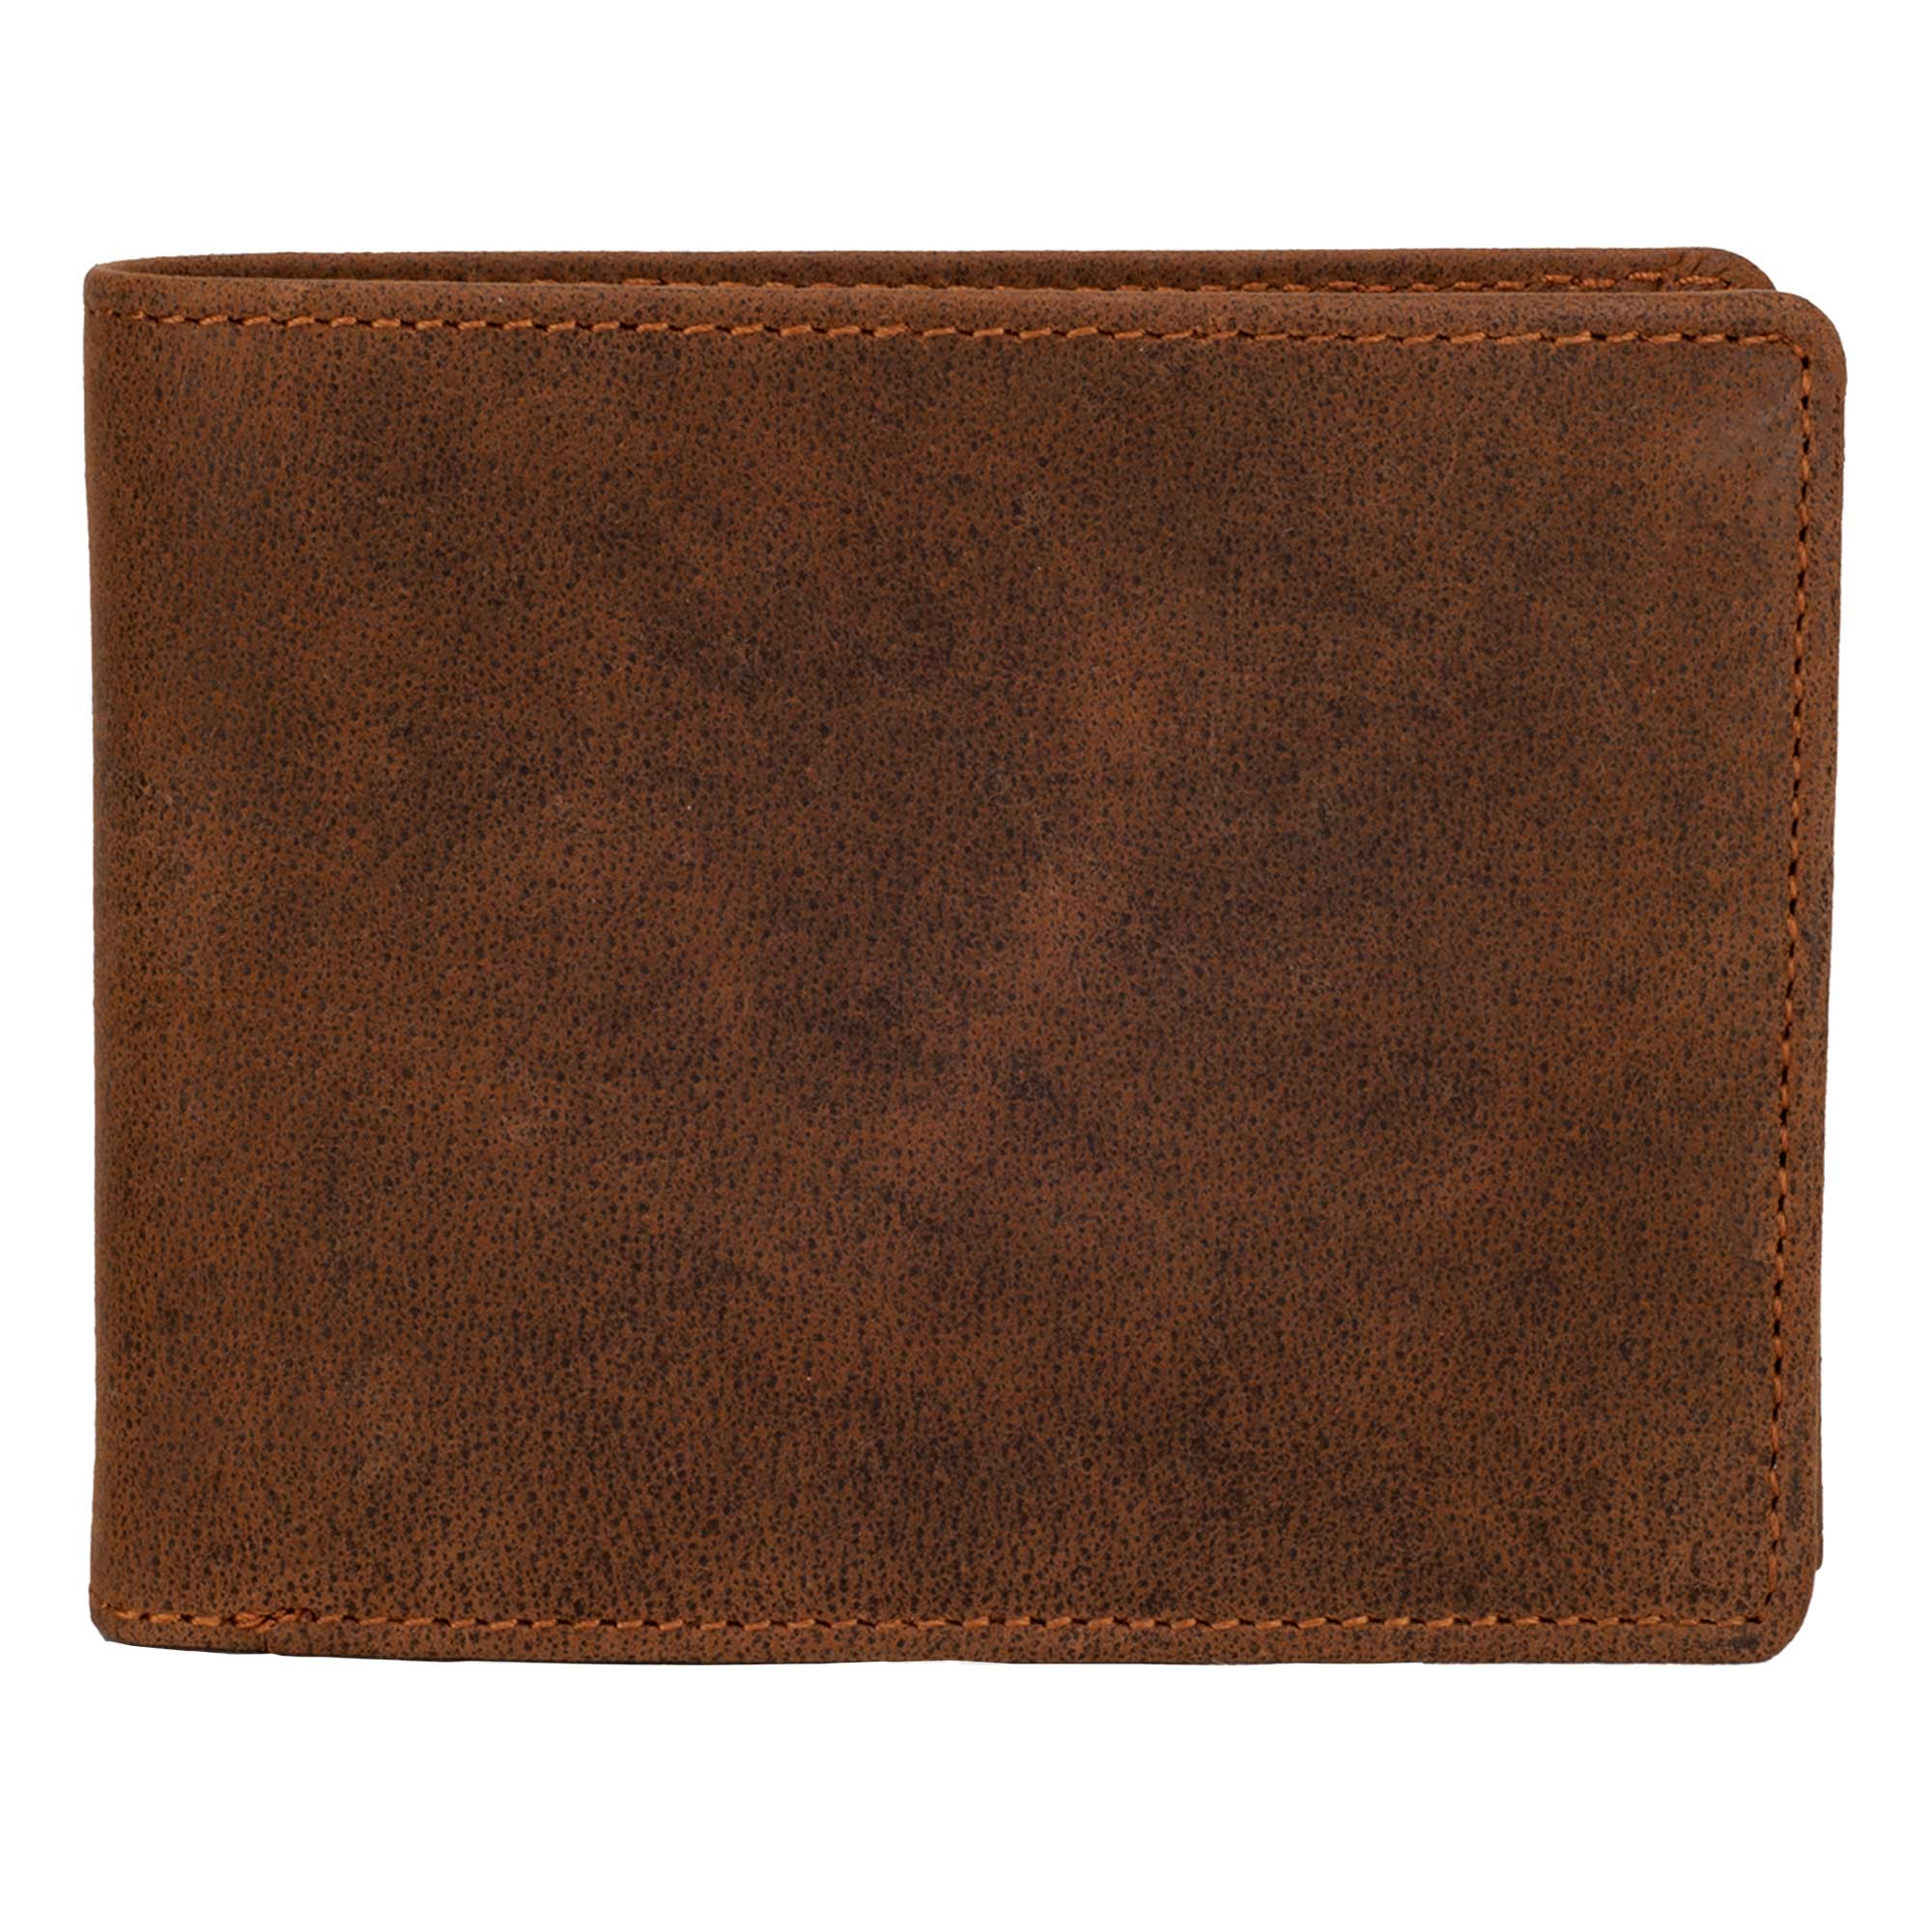 DiLoro Men's Leather Bifold Flip ID Zip Coin Wallet with RFID Protection - Dark Hunter Brown Front View